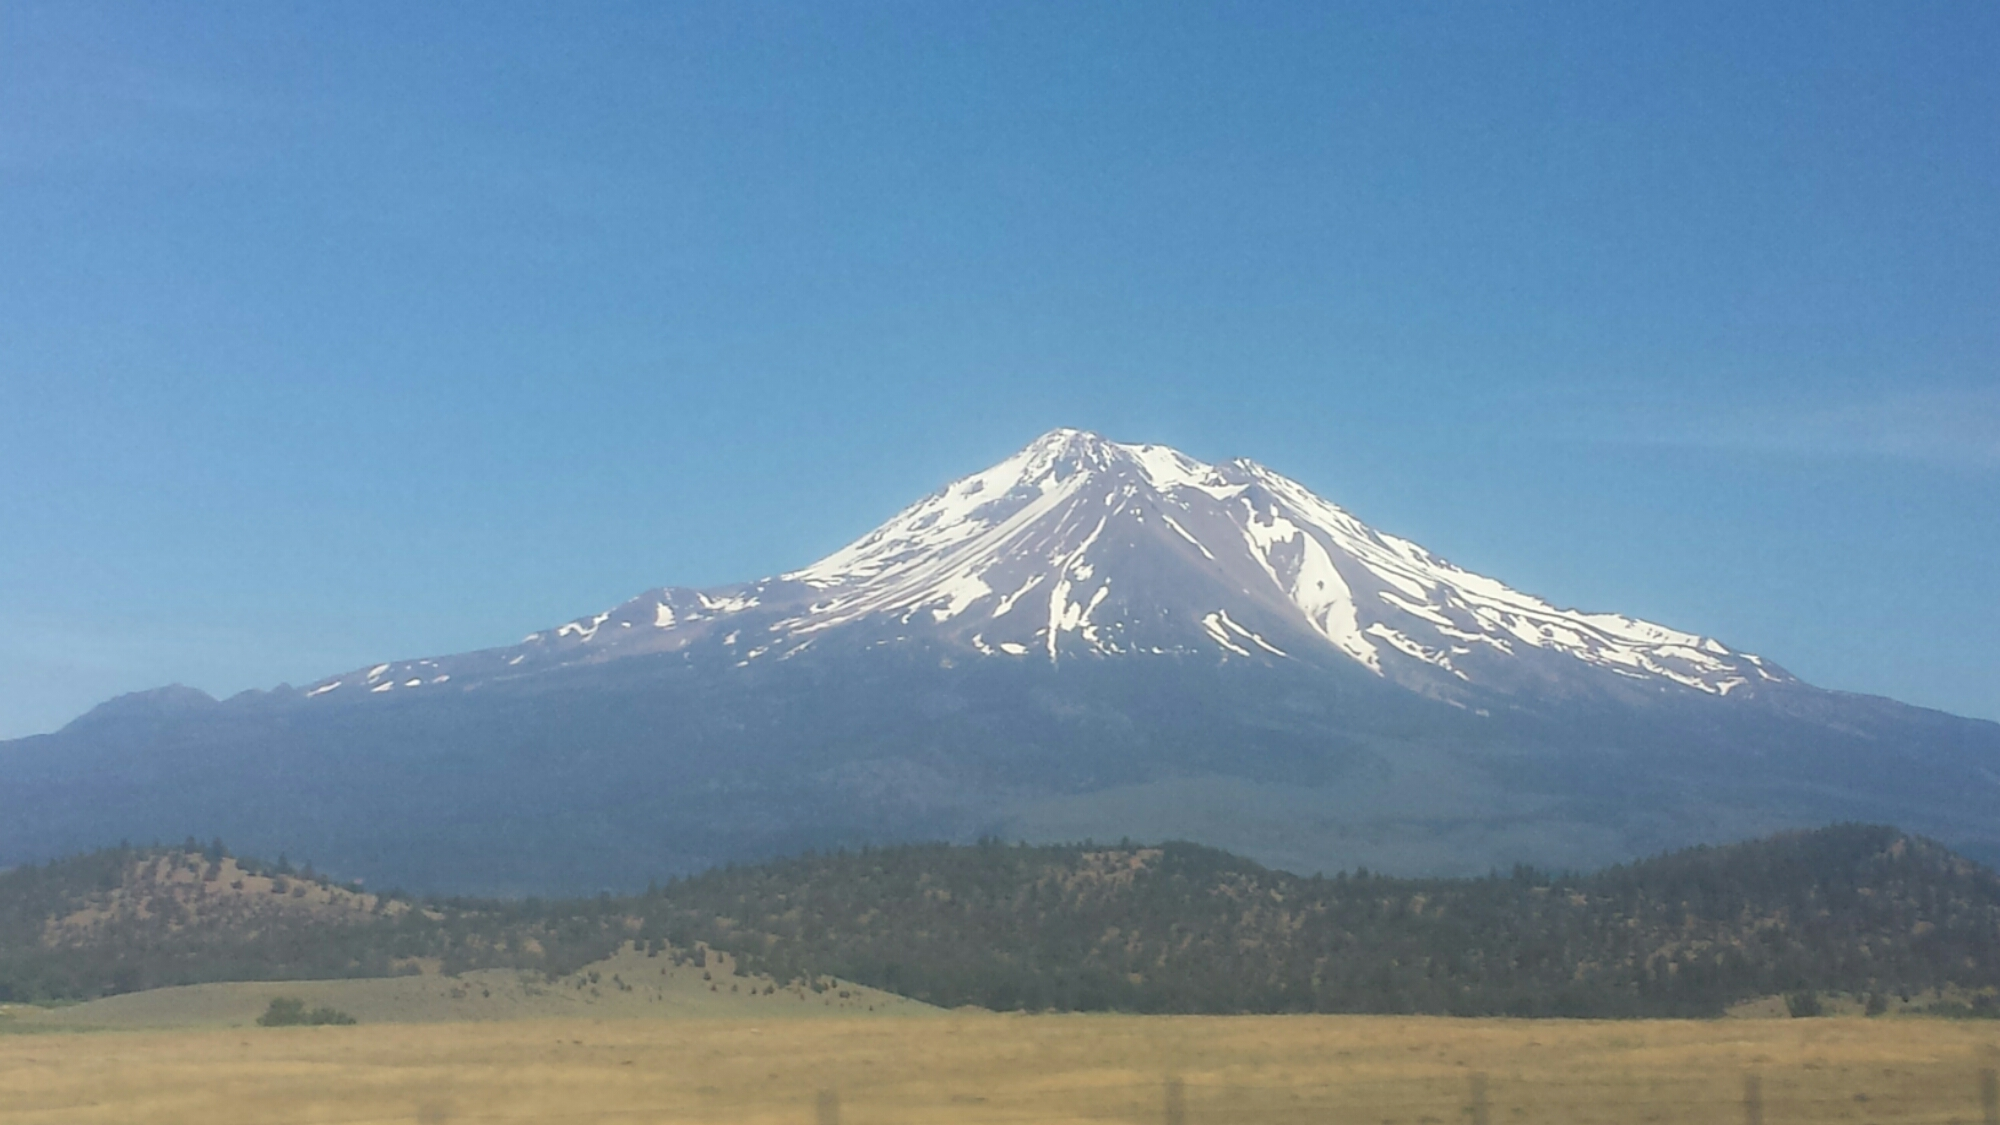 Goodbye, Mount Shasta